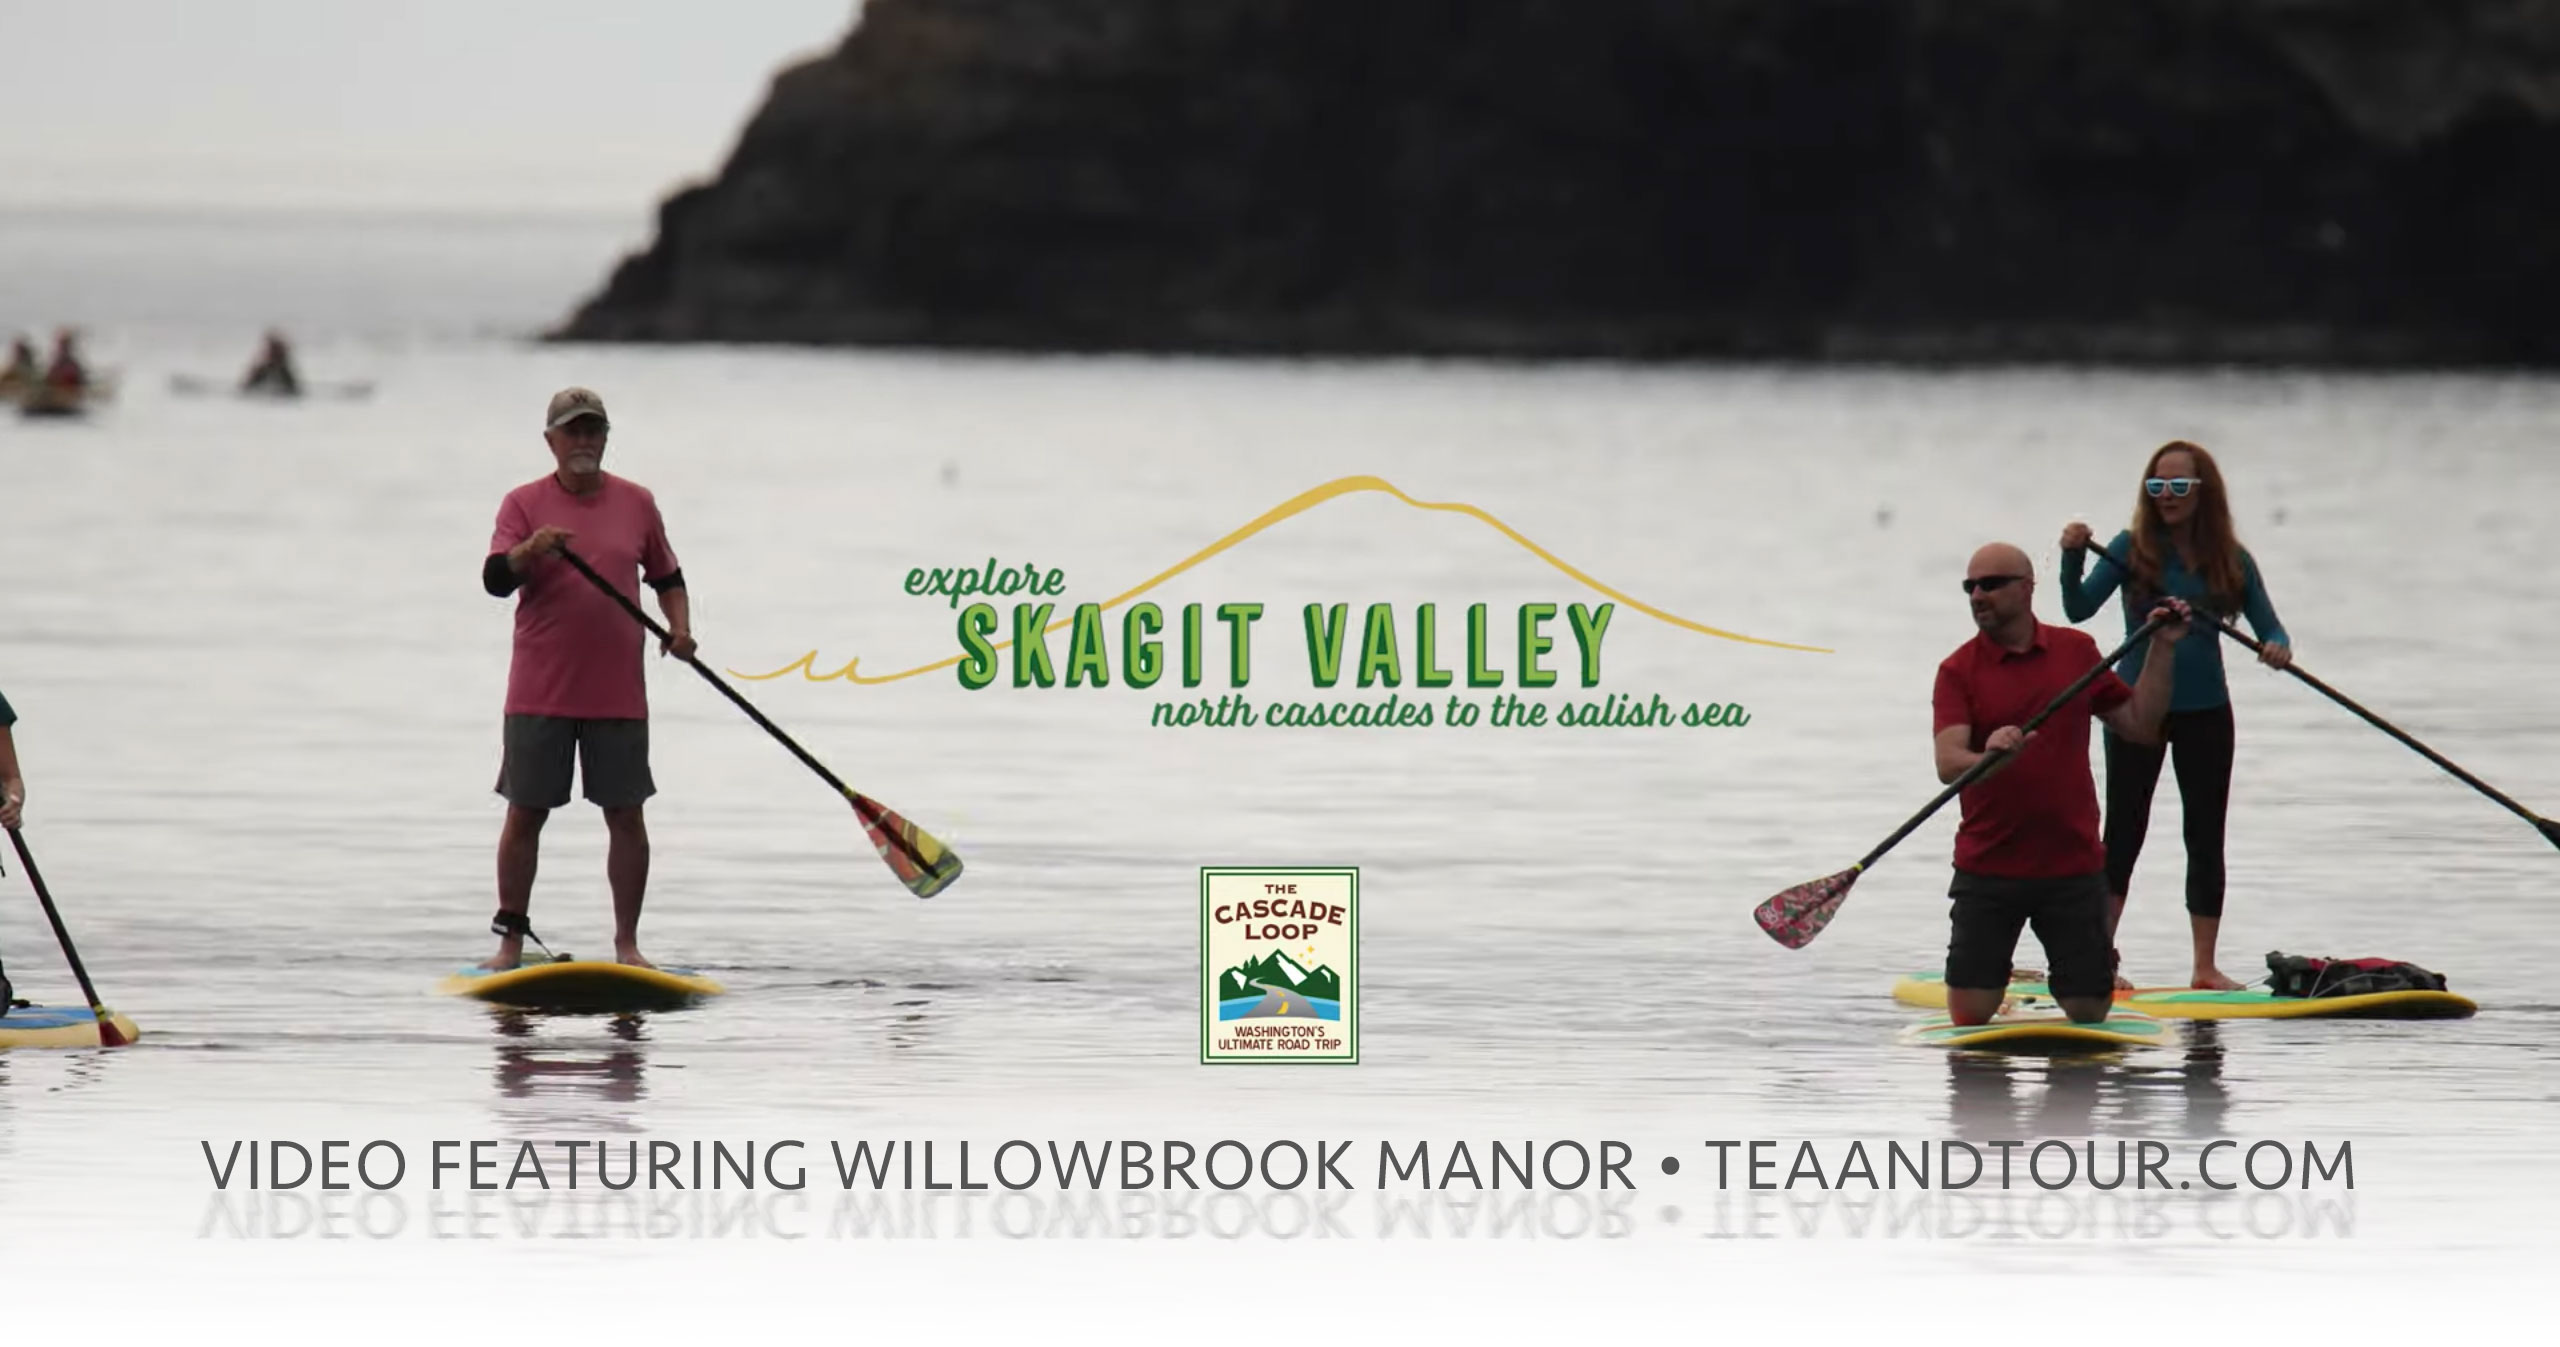 Visit Skagit Valley Video featuring Willowbrook Manor